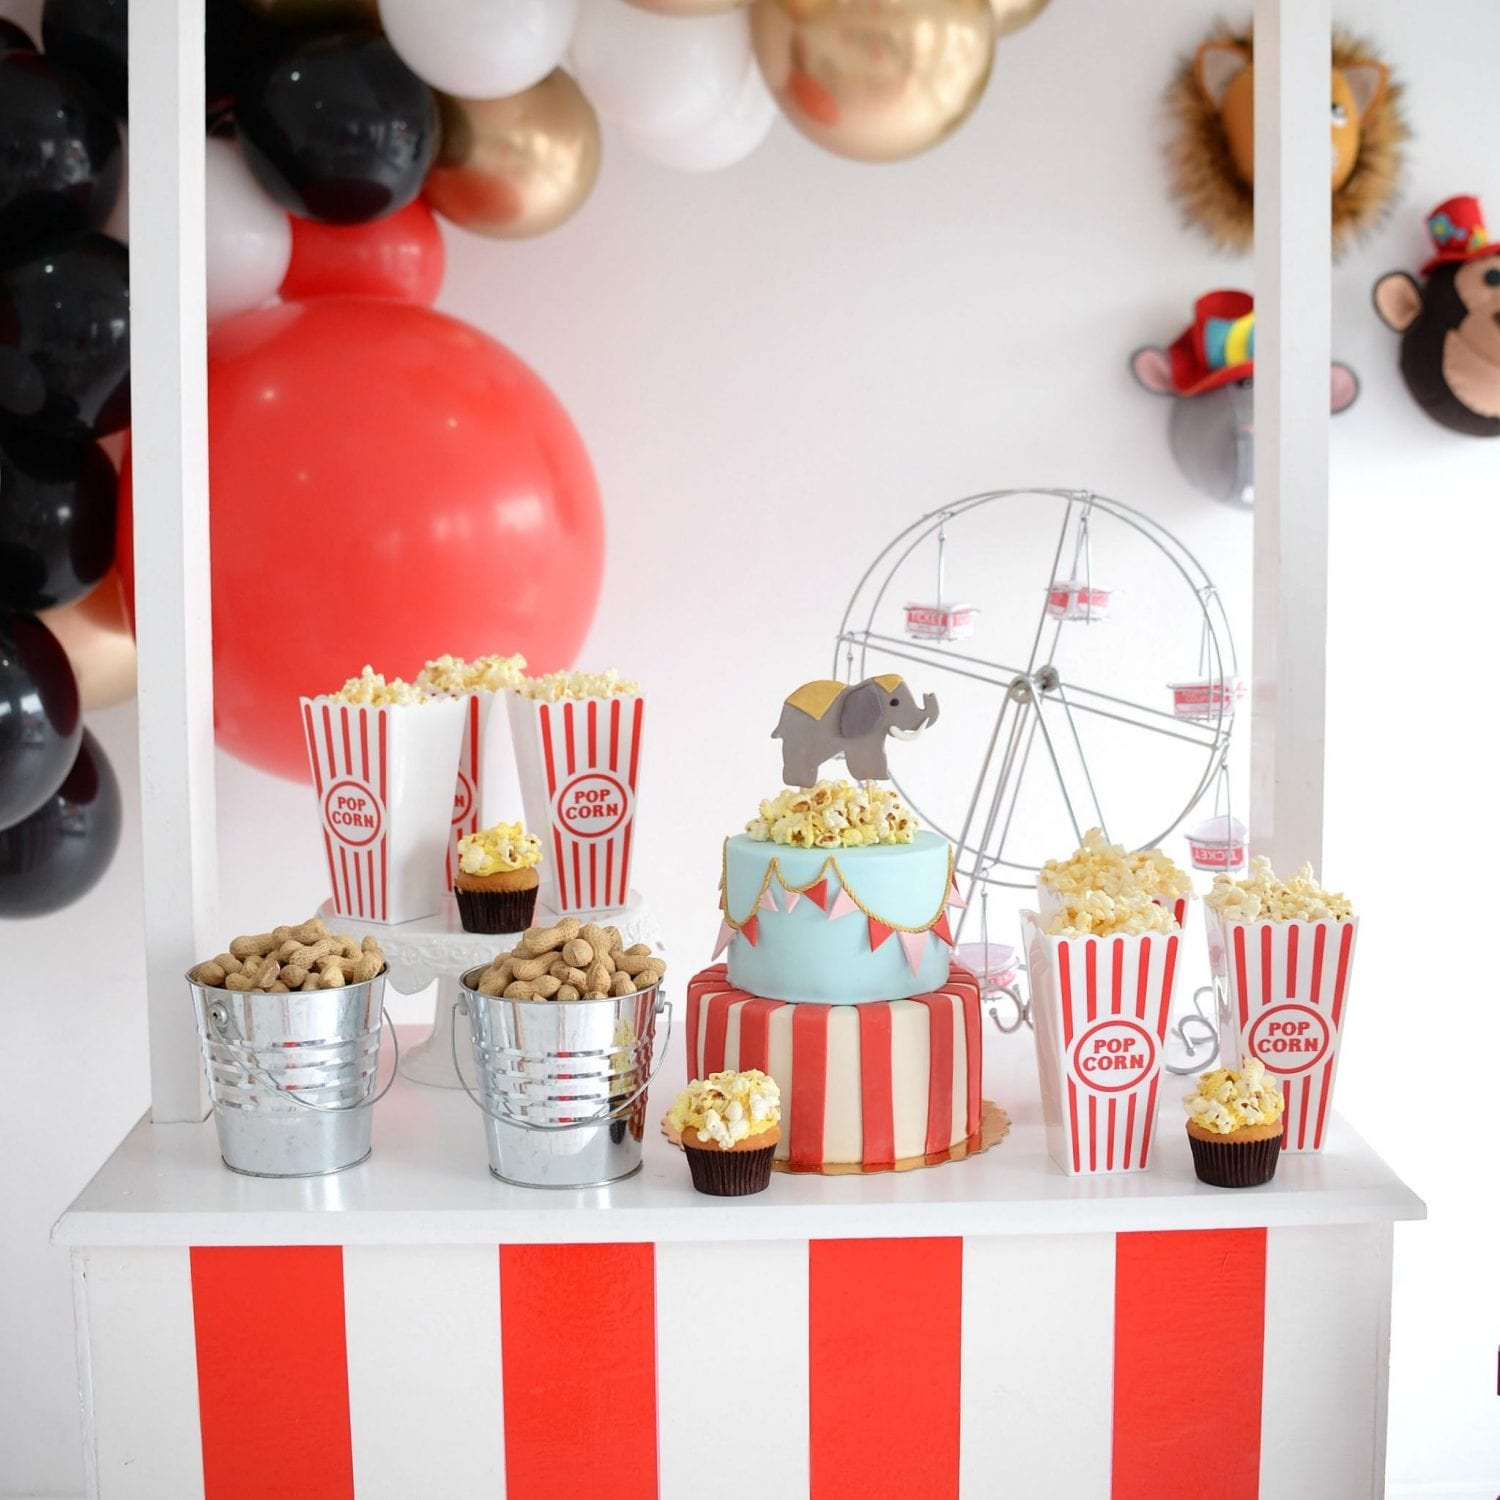 A Day at The Circus with Orville Redenbacher